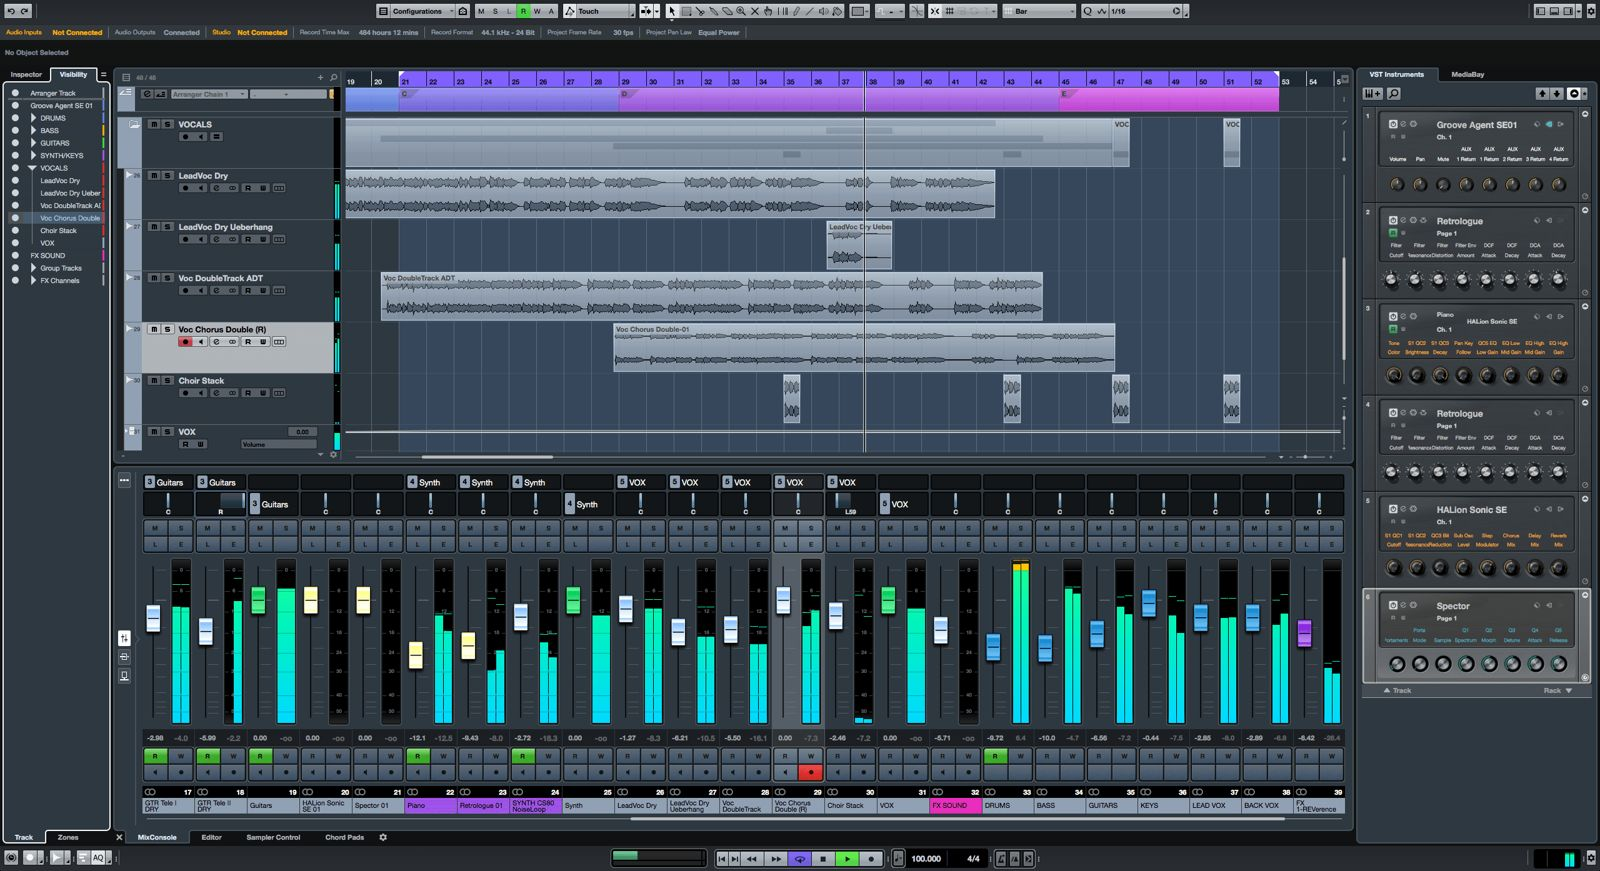 Cubase 9 Music Software DAW